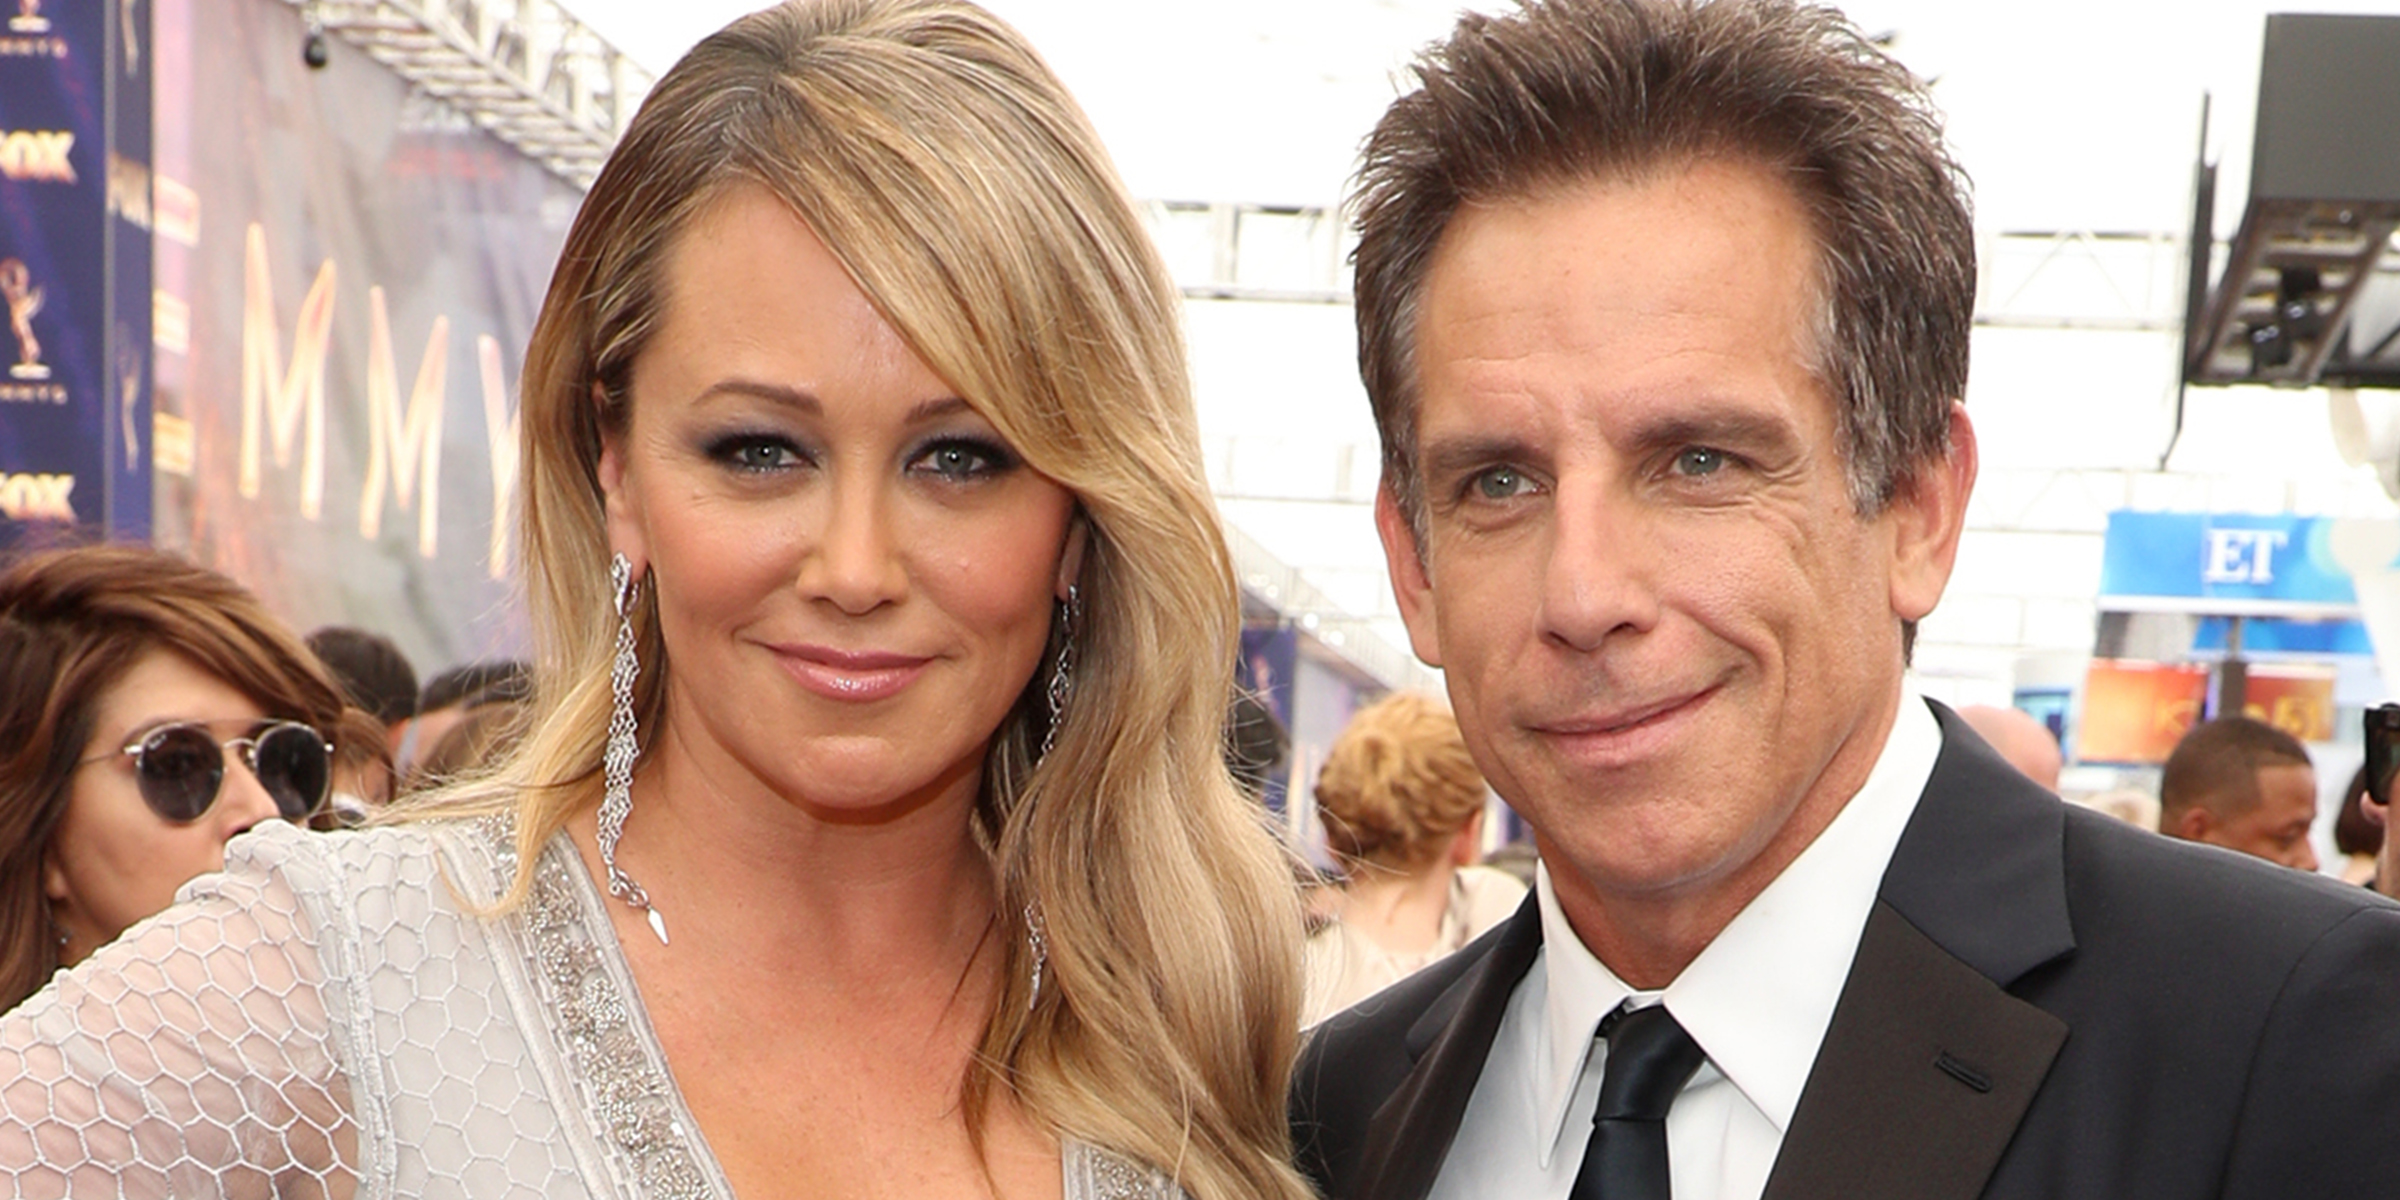 Ben Stiller and Christine Taylor attend Emmys together 2 years after splitting up